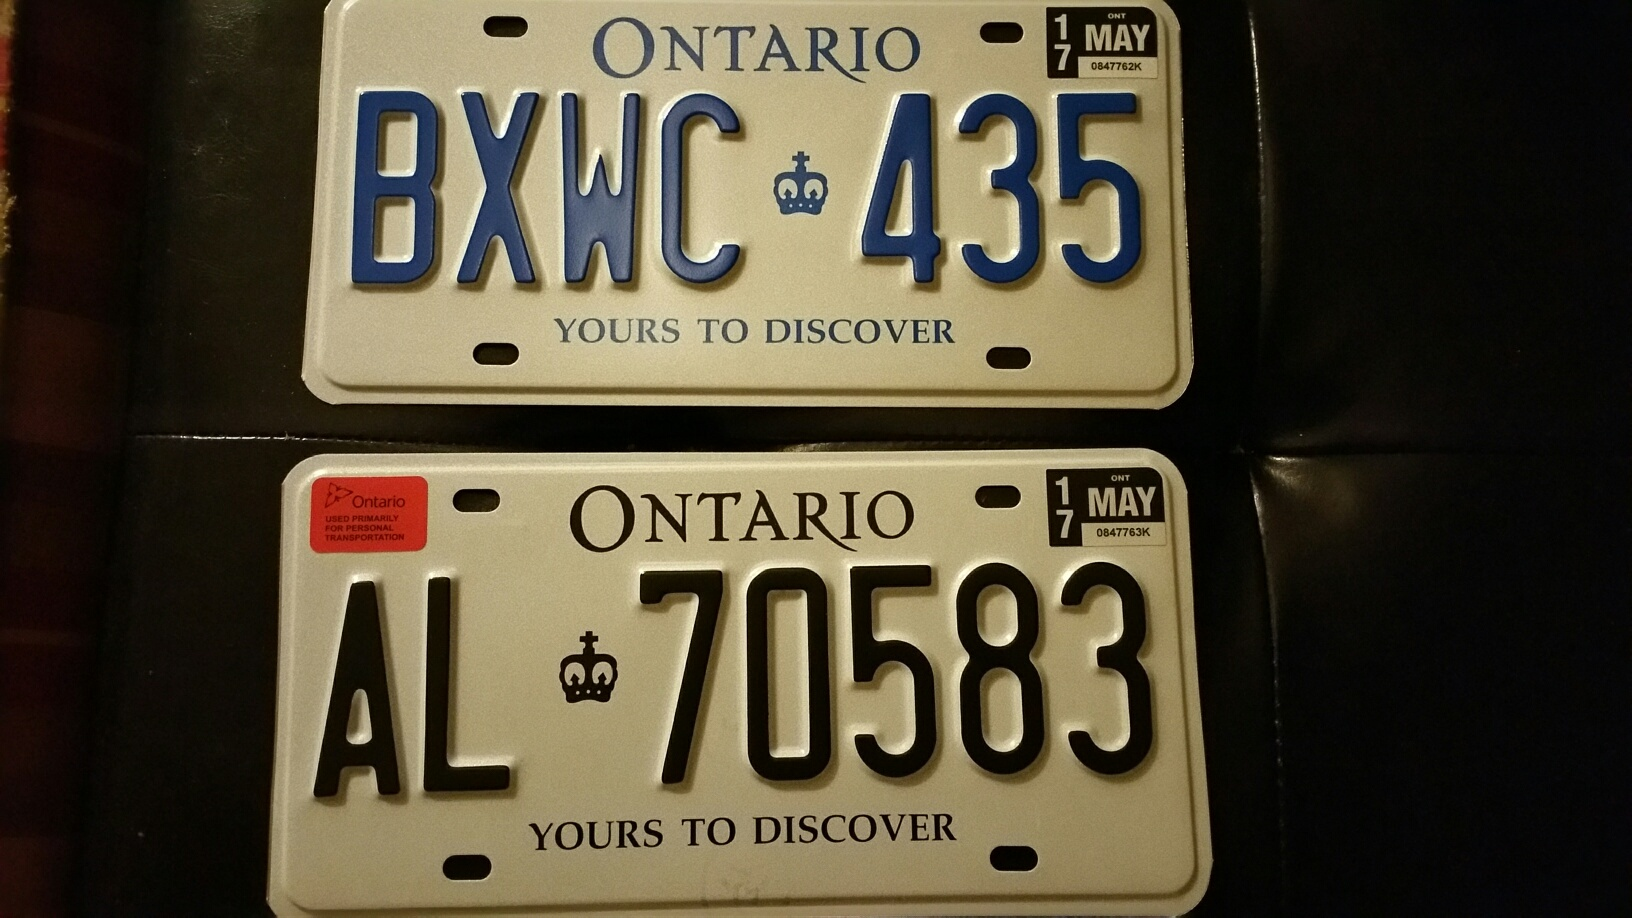 Officially Ontario residents